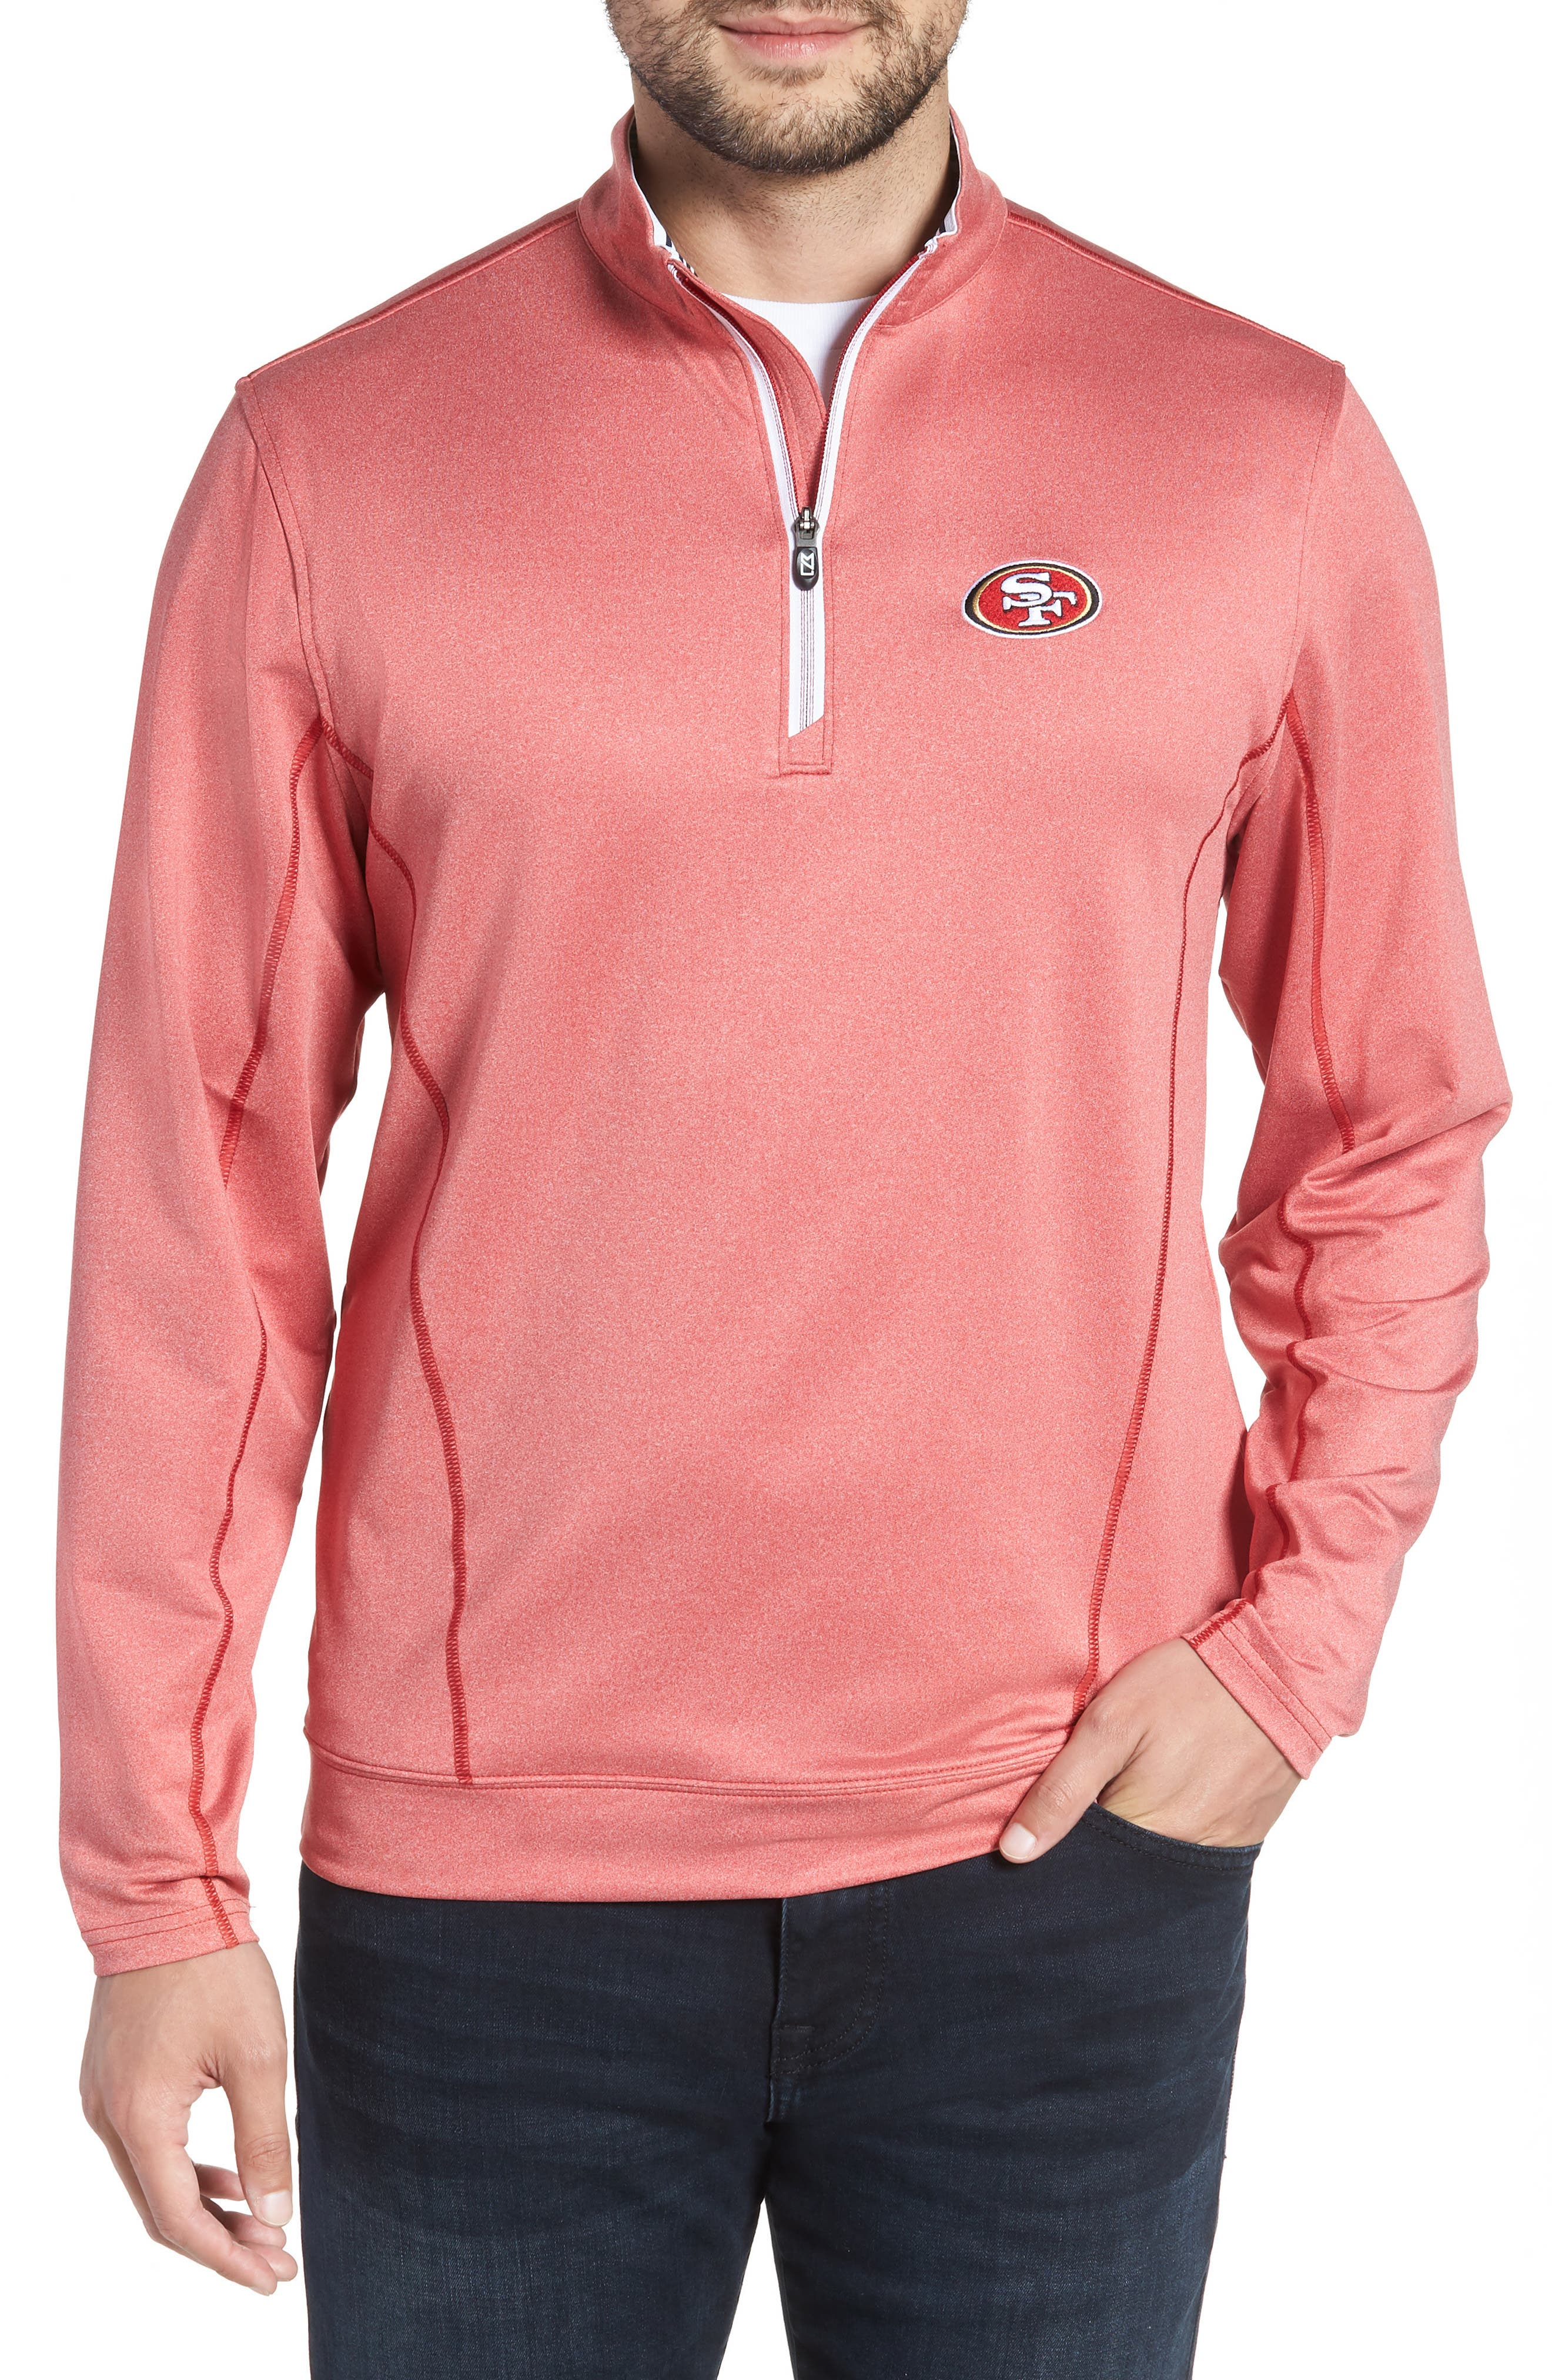 Endurance San Francisco 49s Regular Fit Pullover,                         Main,                         color, CARDINAL RED HEATHER